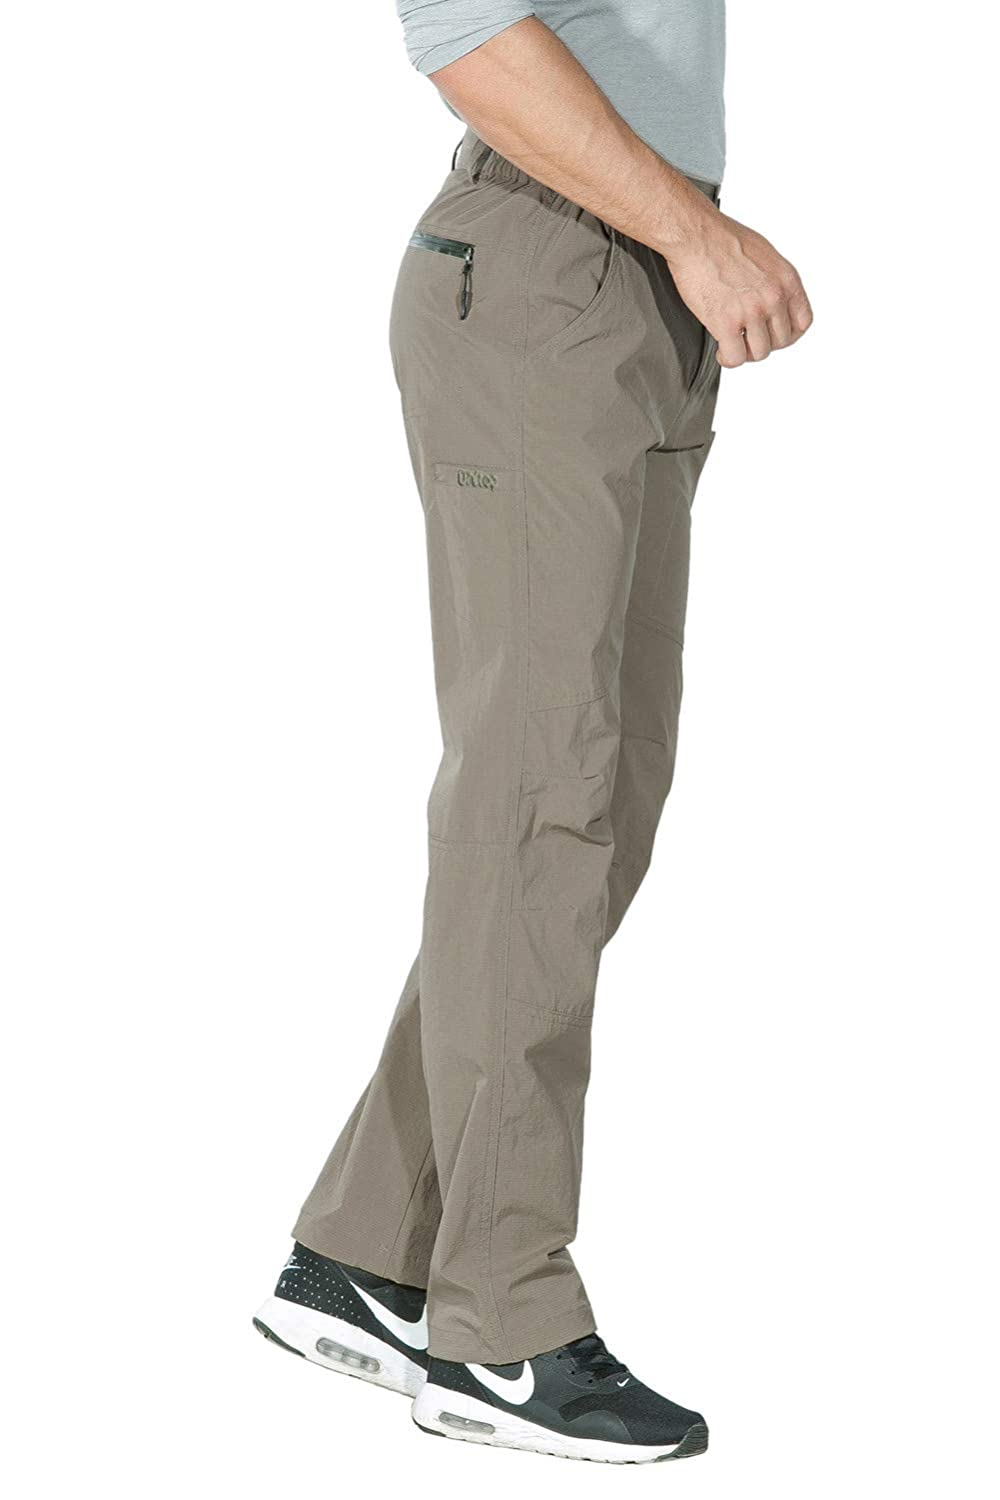 Unitop Mens Lightweight Water Resistant Quick Dry Hiking Cargo Pants UT7011